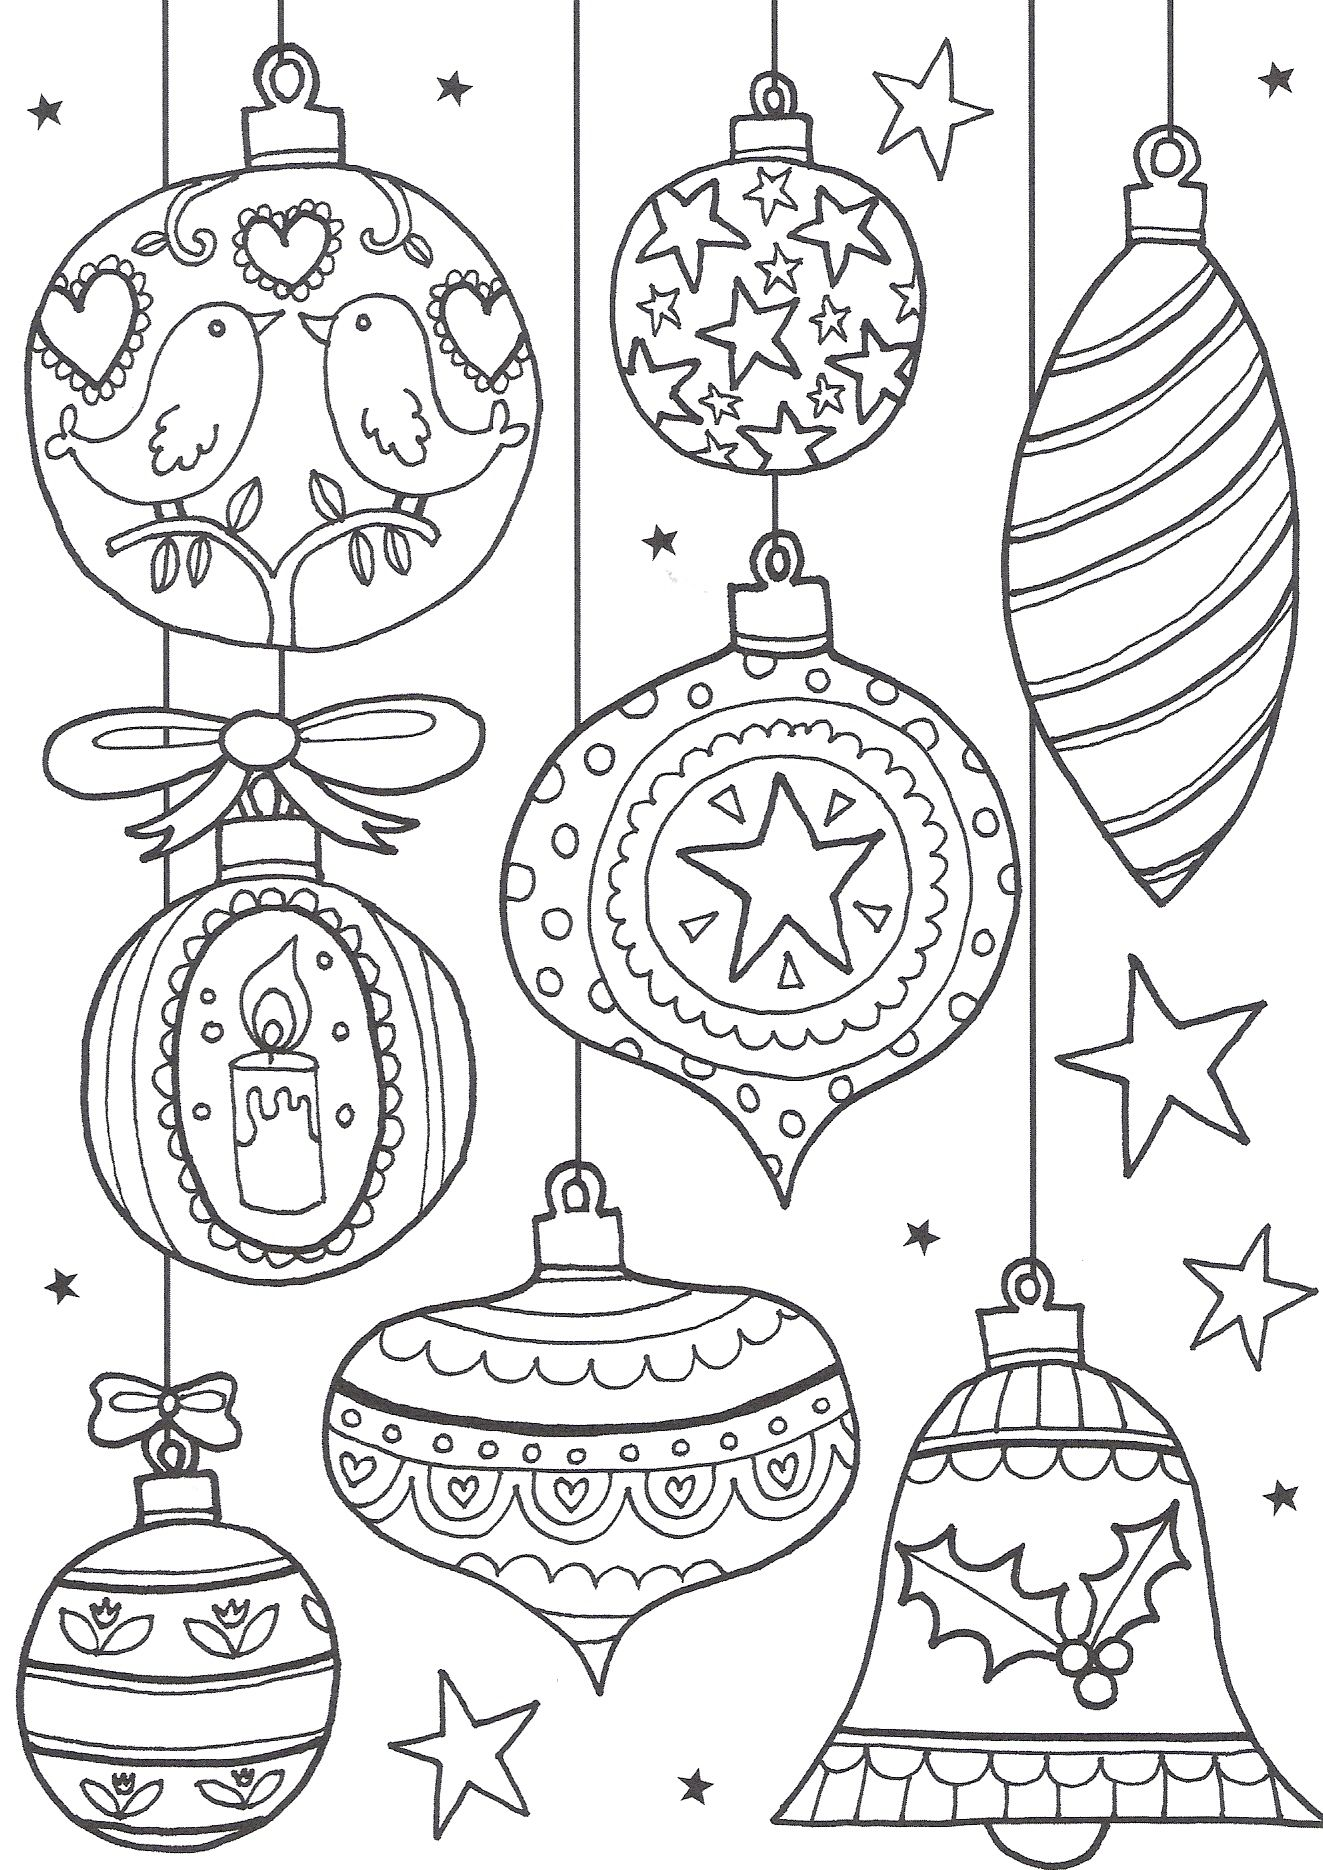 Christmas colouring in sheets printable - Free Christmas Colouring Pages For Adults The Ultimate Roundup